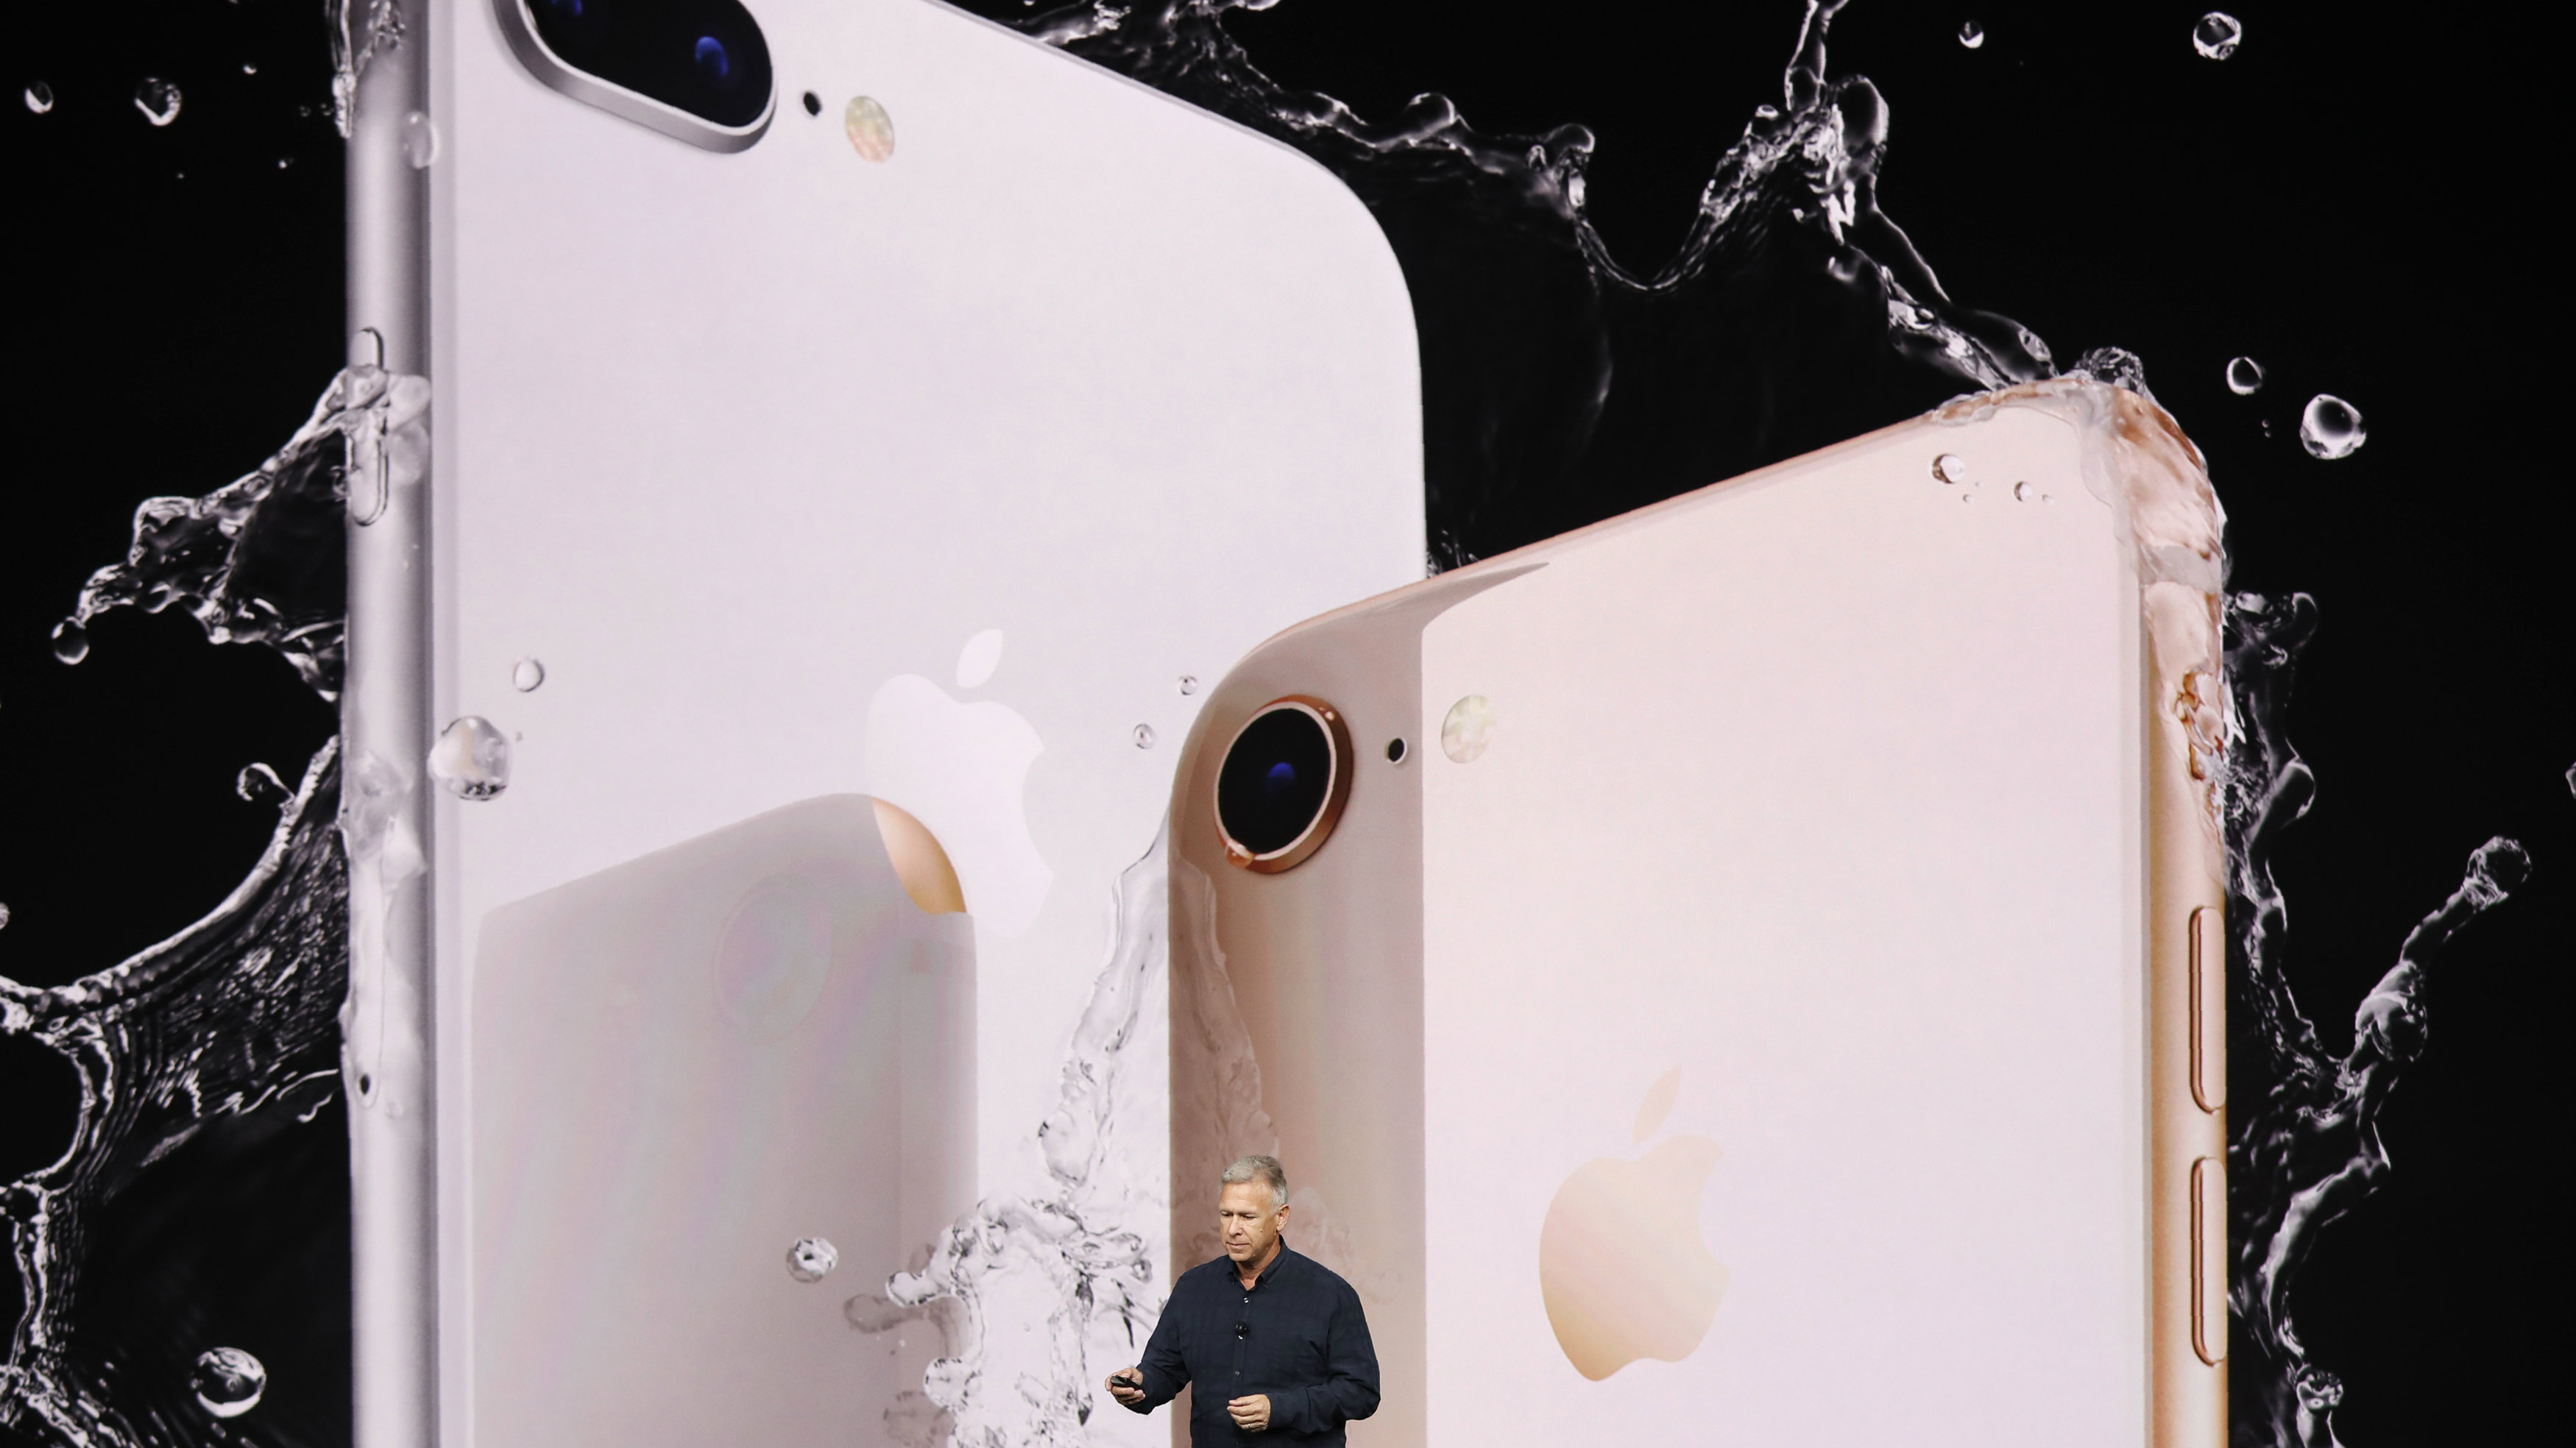 How much does the iPhone 8 cost? Prices in dollars, pounds, and yuan